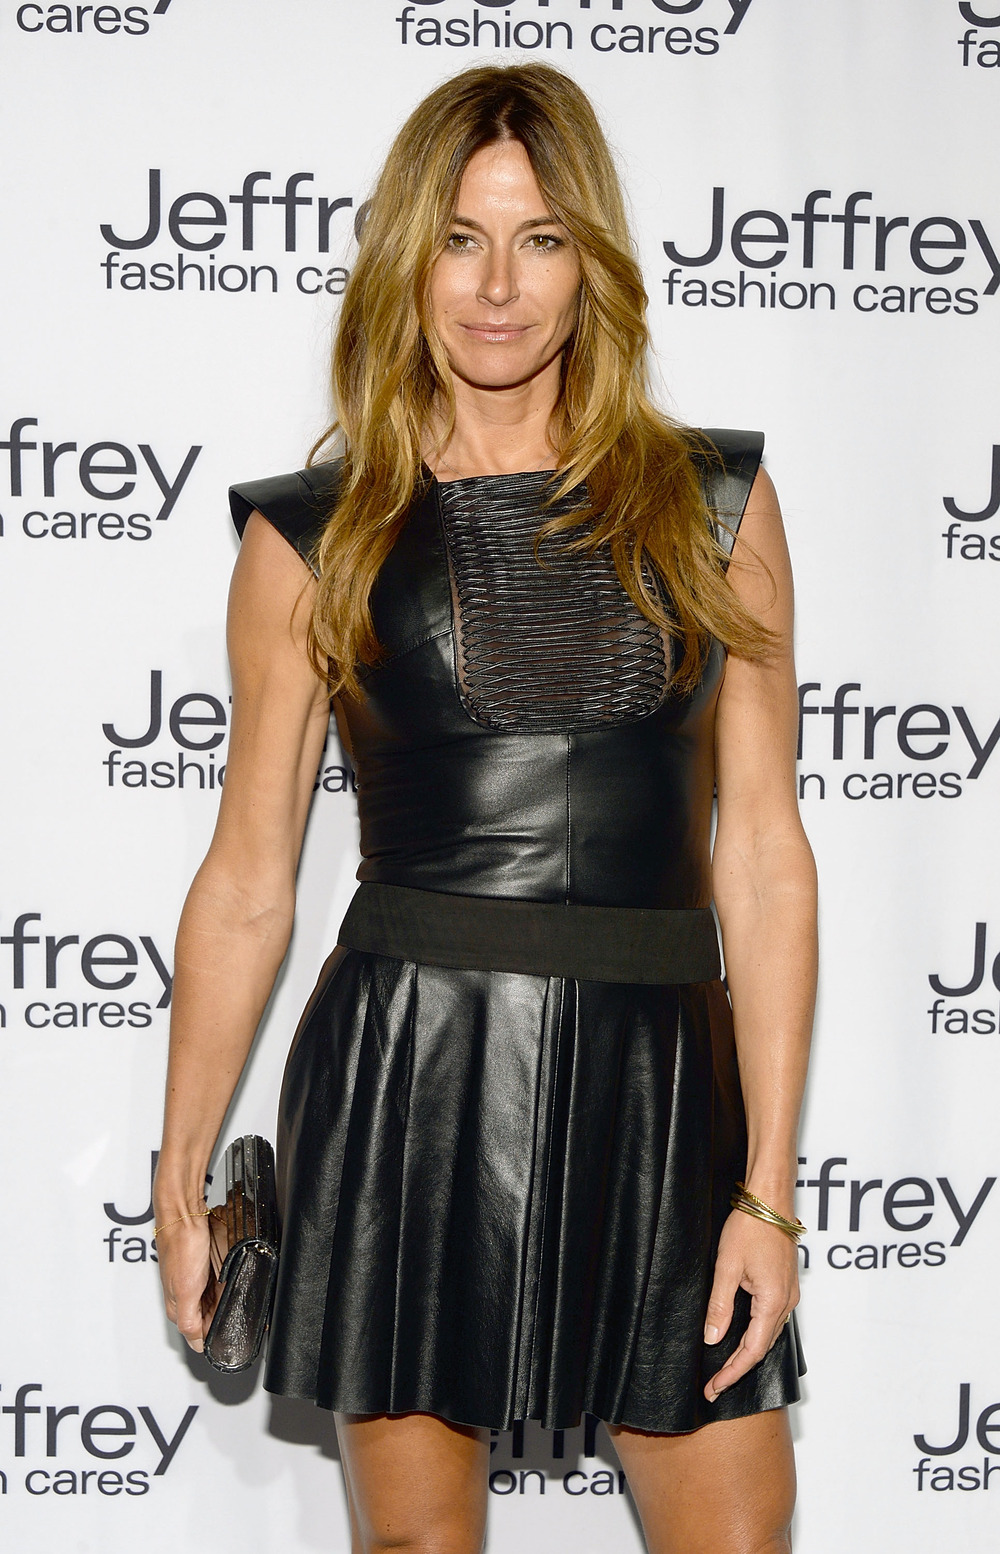 Real Housewives of New York Star Kelly Bensimon Rocks Tight Leather Dress in NYC (PHOTOS)